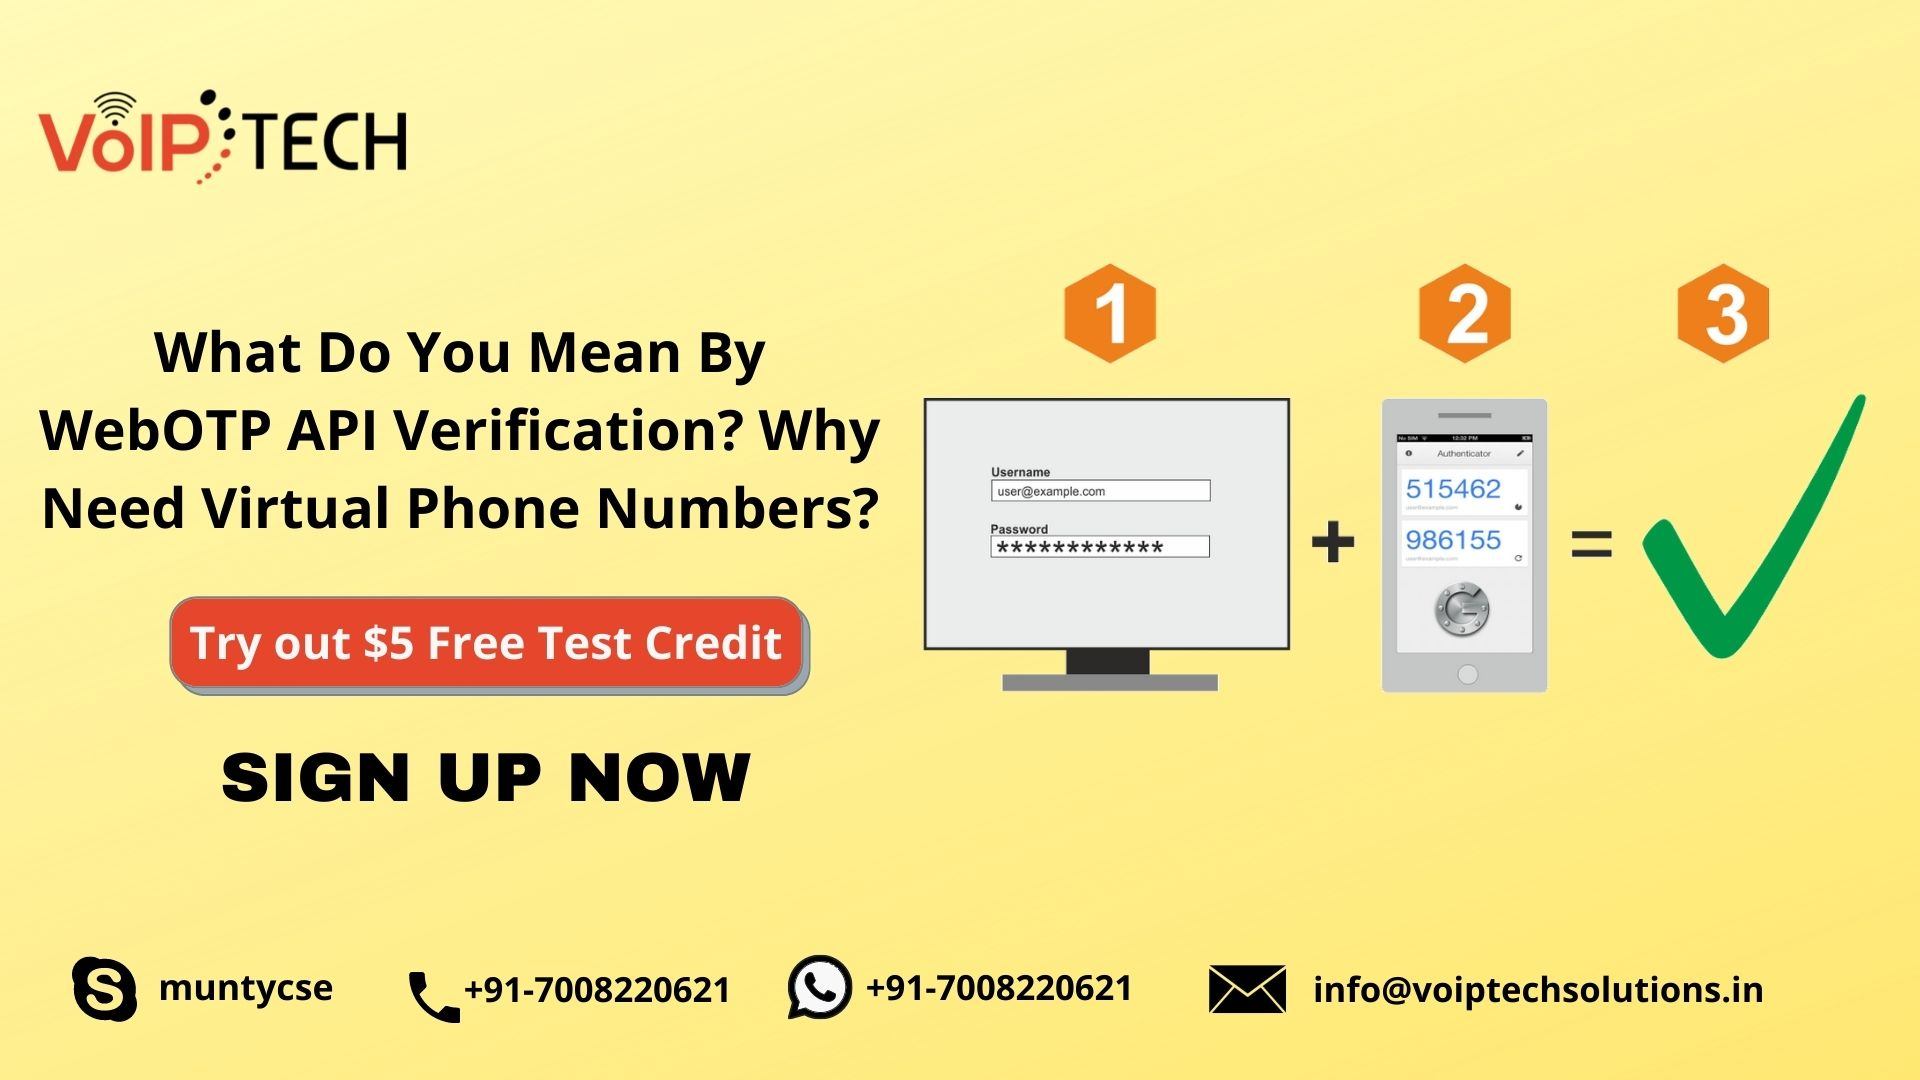 WebOTP API Verification, What Do You Mean By WebOTP API Verification? Why Need Virtual Phone Numbers?,VoIP tech solutions, vici dialer, virtual number, Voip Providers, voip services in india, best sip provider, business voip providers, VoIP Phone Numbers, voip minutes provider, top voip providers, voip minutes, International VoIP Provider